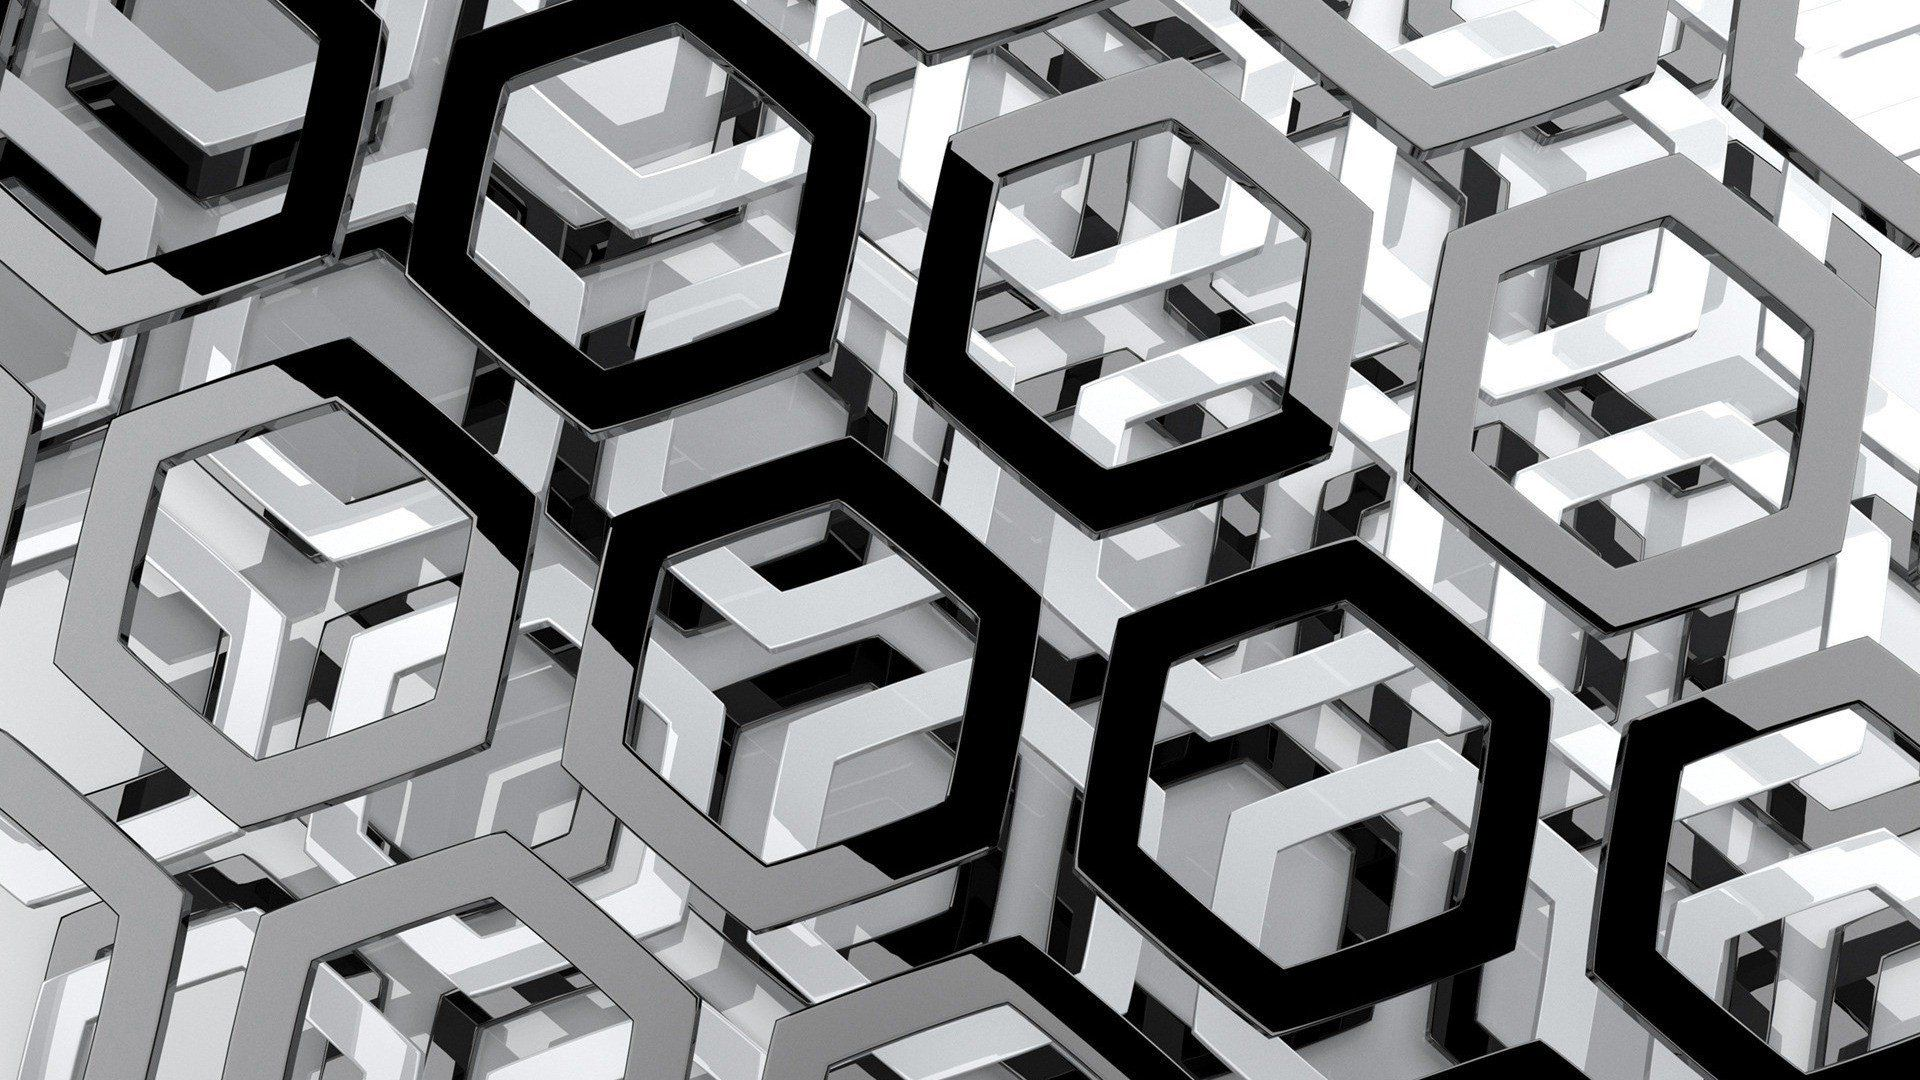 Abstract Black And White Hexagons Monochrome Wallpaper 1920x1080 303281 Wallpaperup Hexagon Wallpaper Silver Hexagon Wallpaper Black Wallpaper